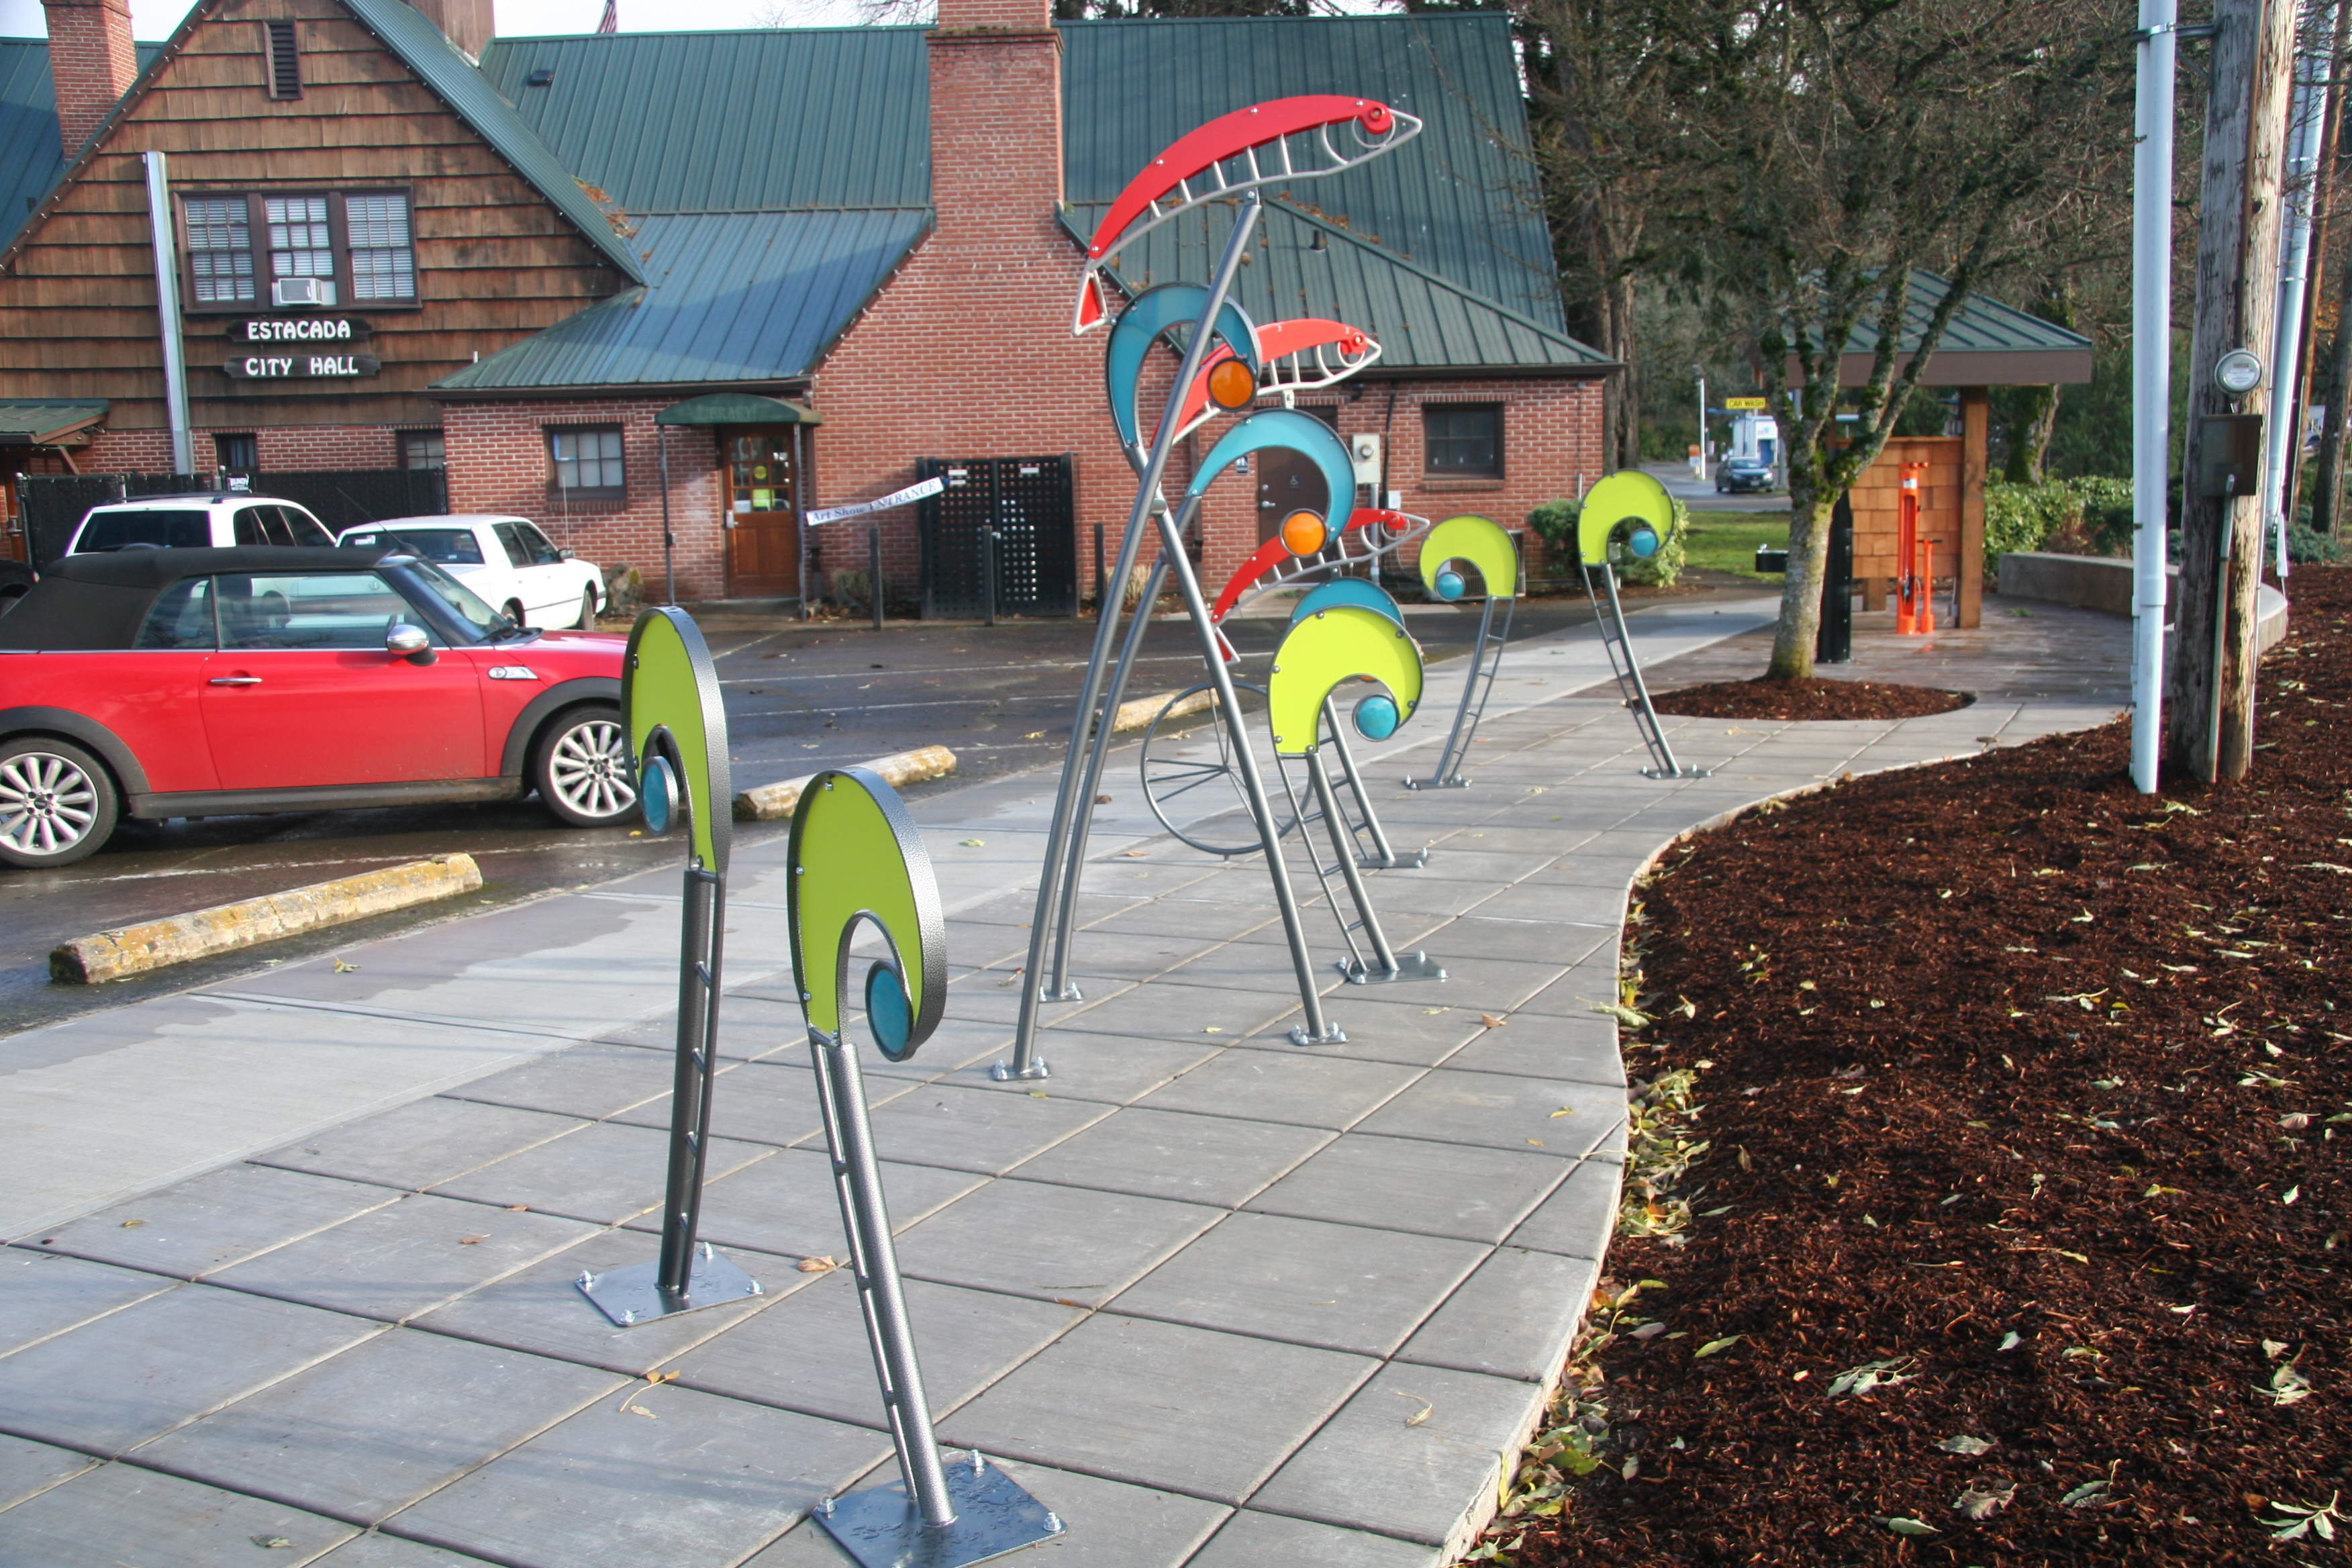 Estacada Cycling Station is near complete!